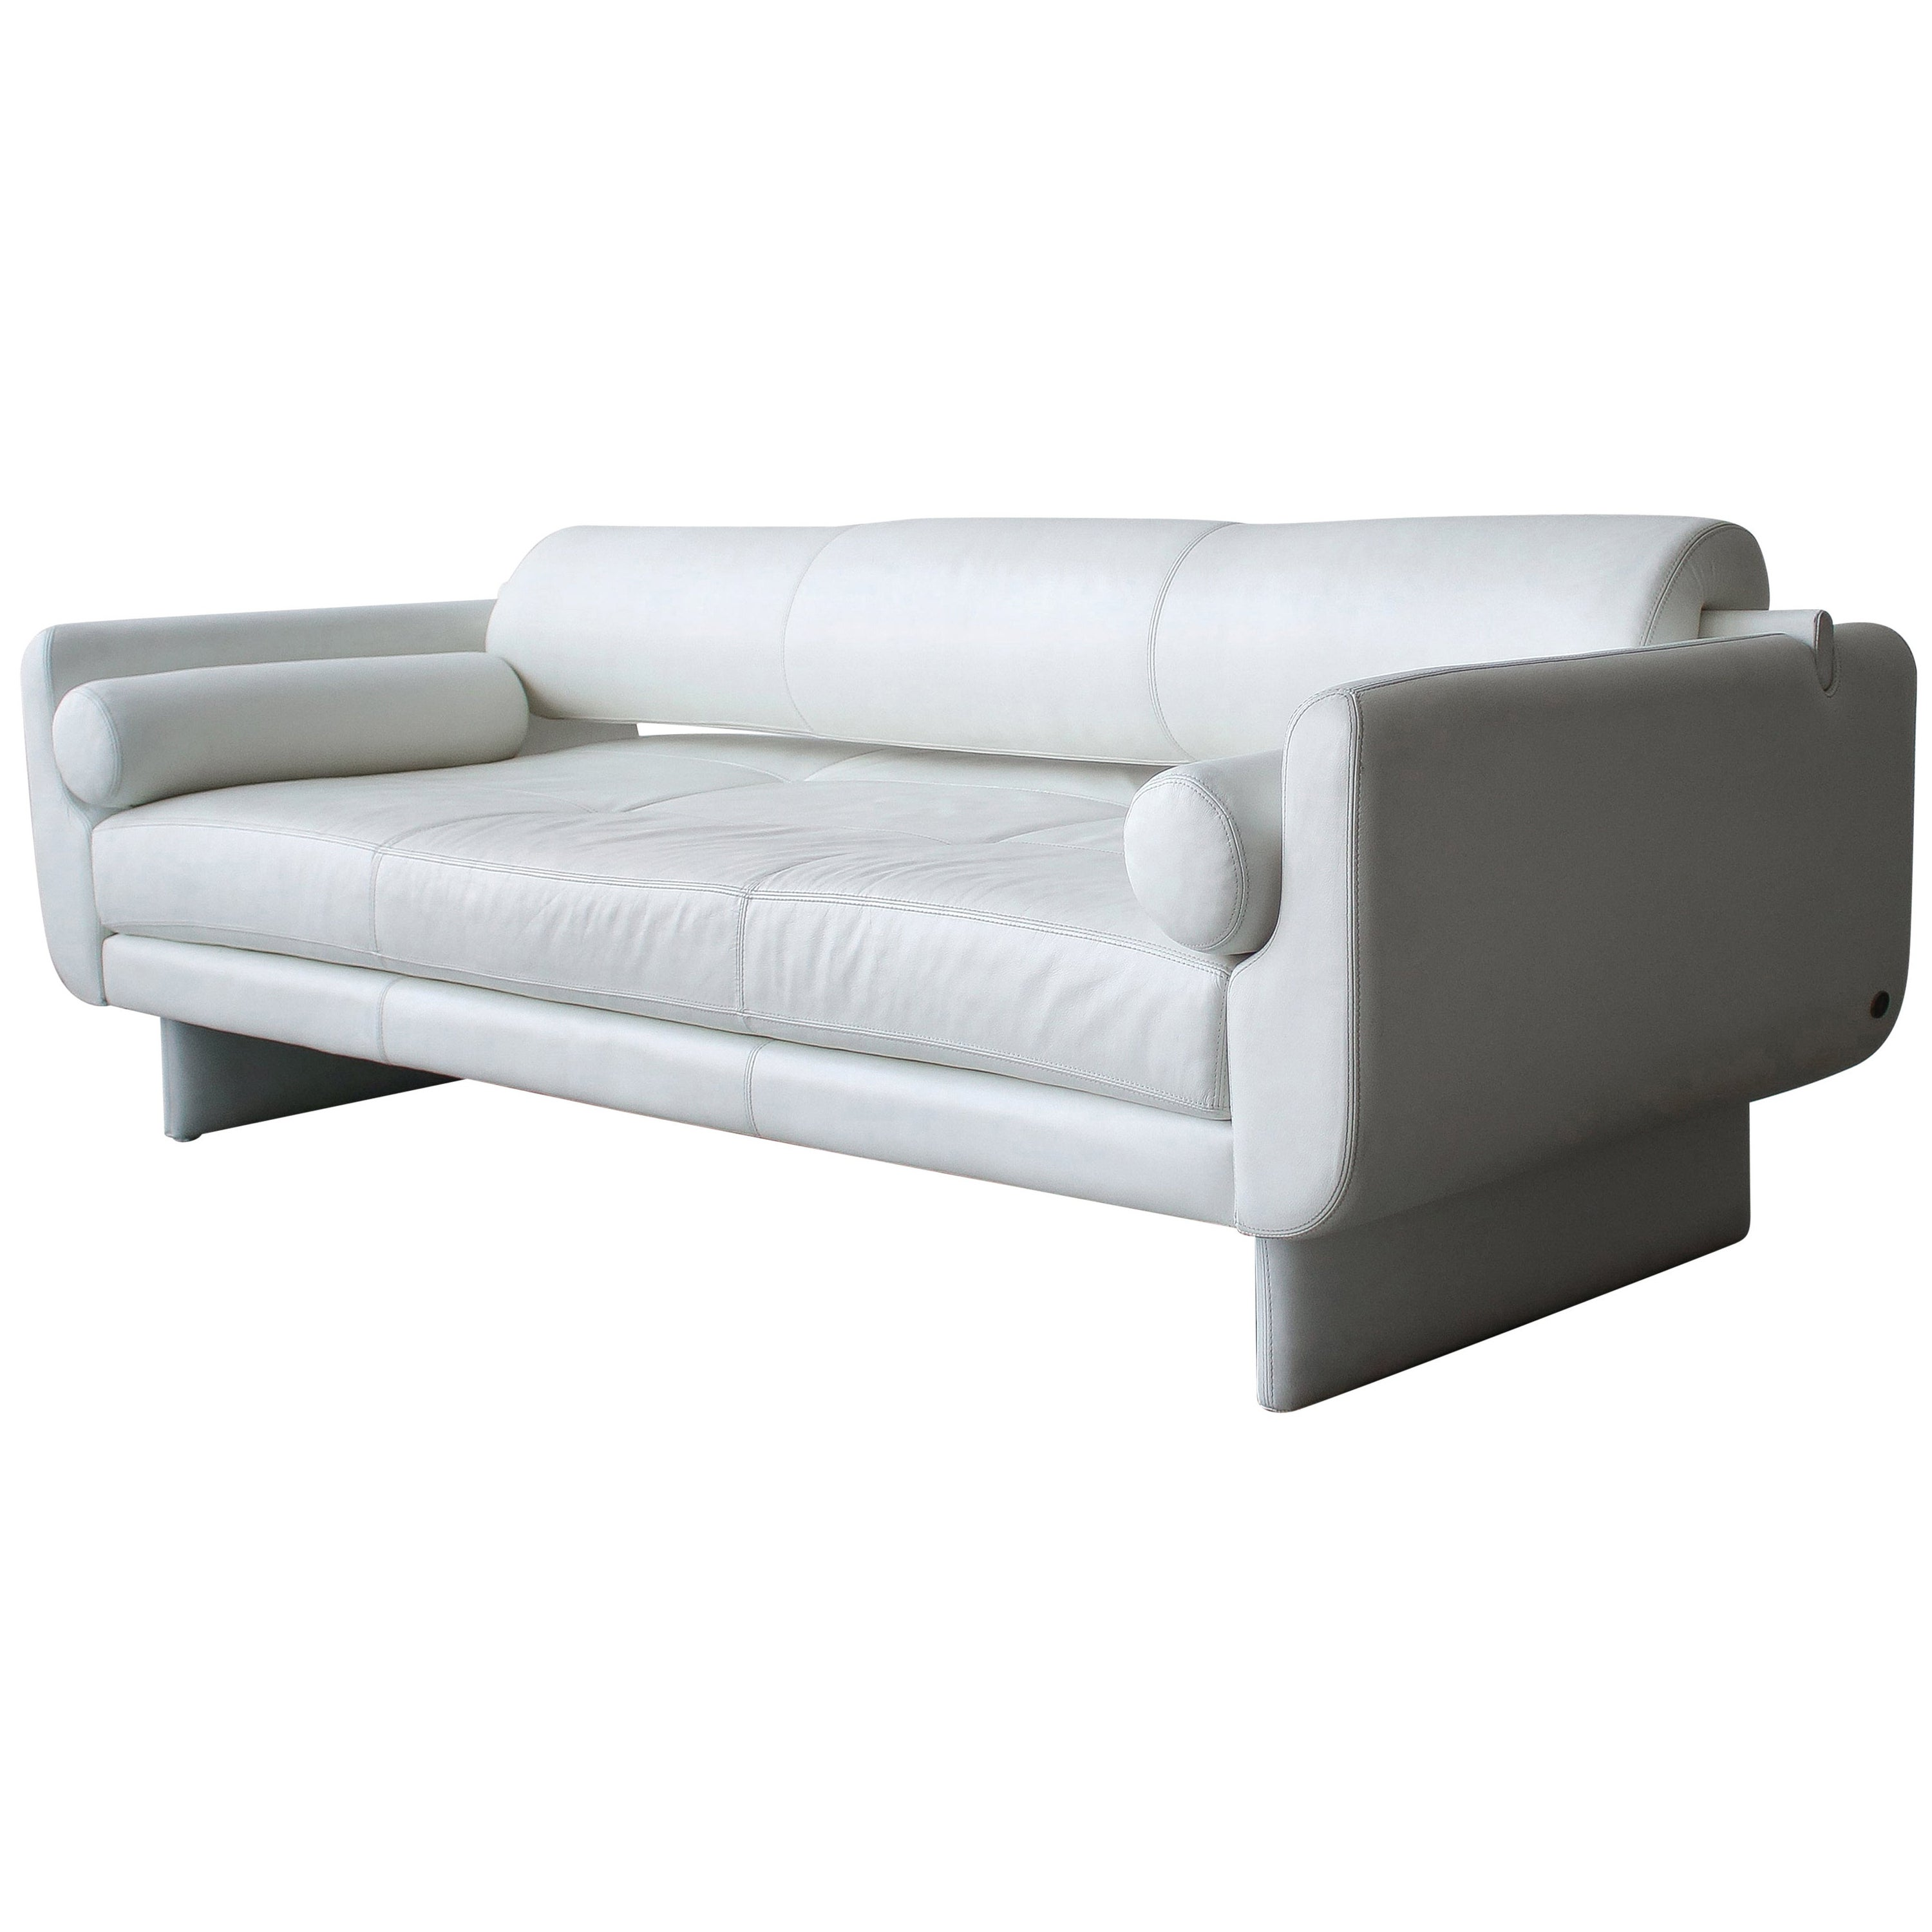 Post Modern Matinee Sofa Daybed by Vladimir Kagan